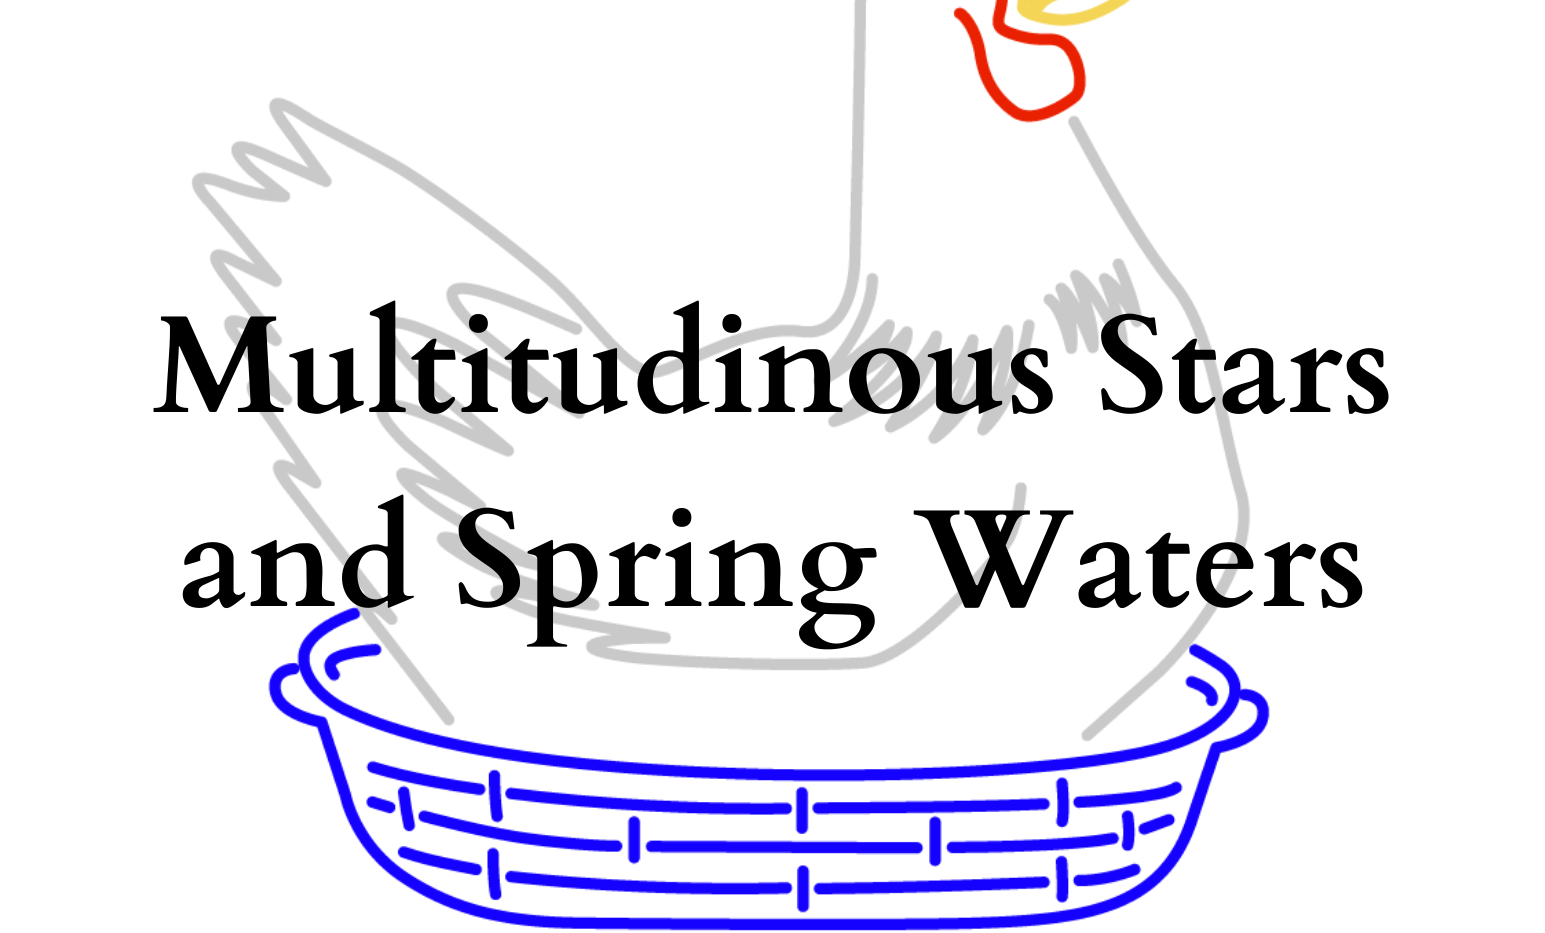 Multitudinous Stars and SPring Waters